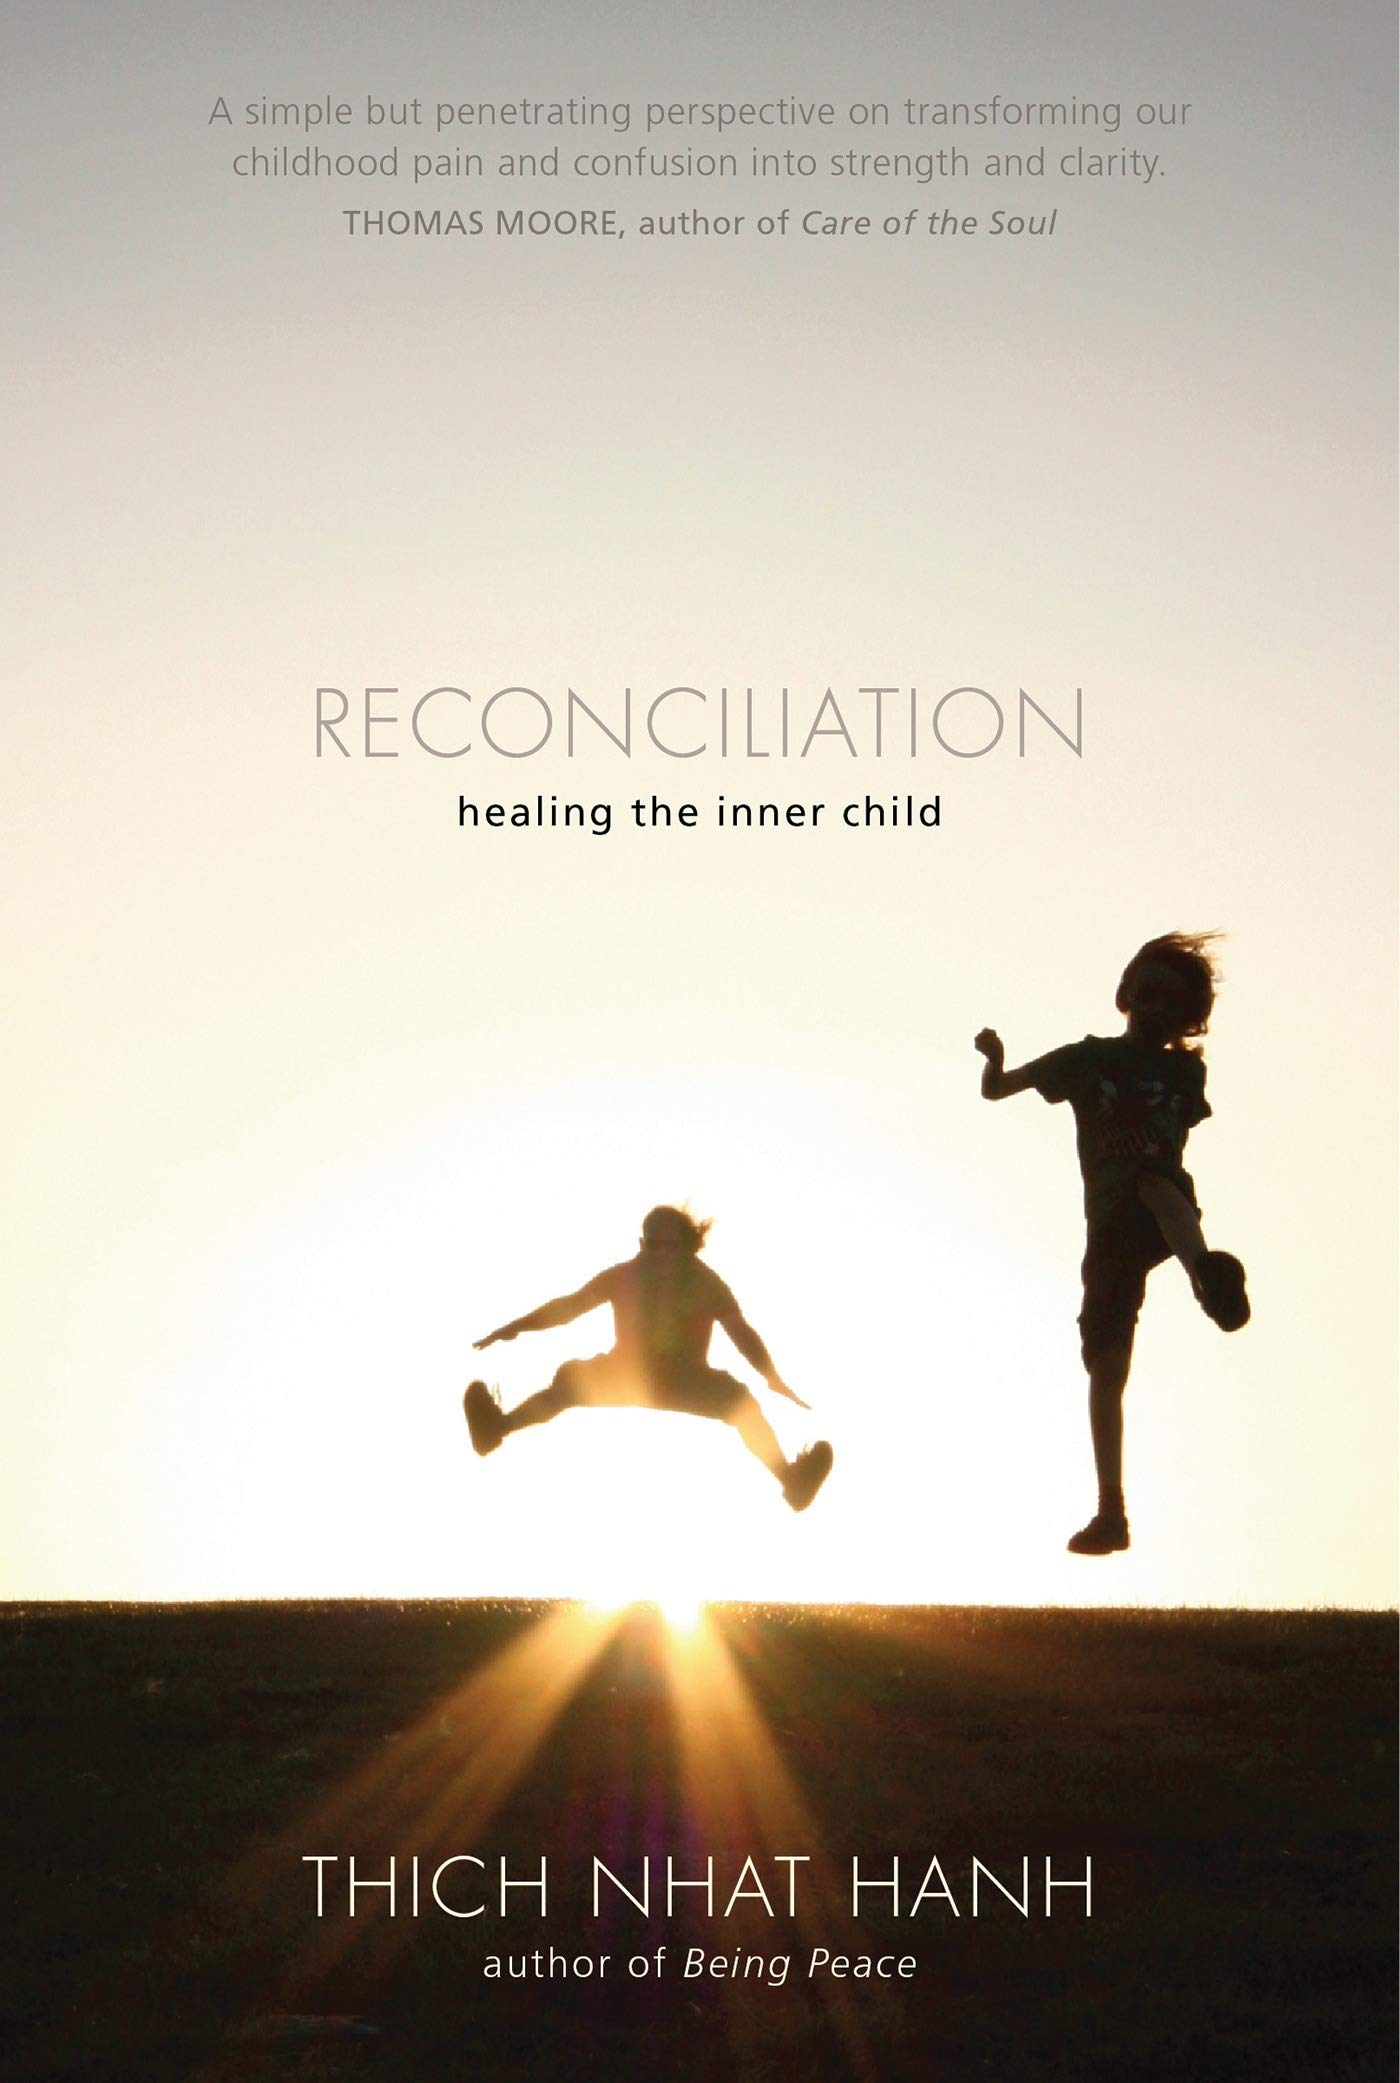 Image OfReconciliation: Healing The Inner Child